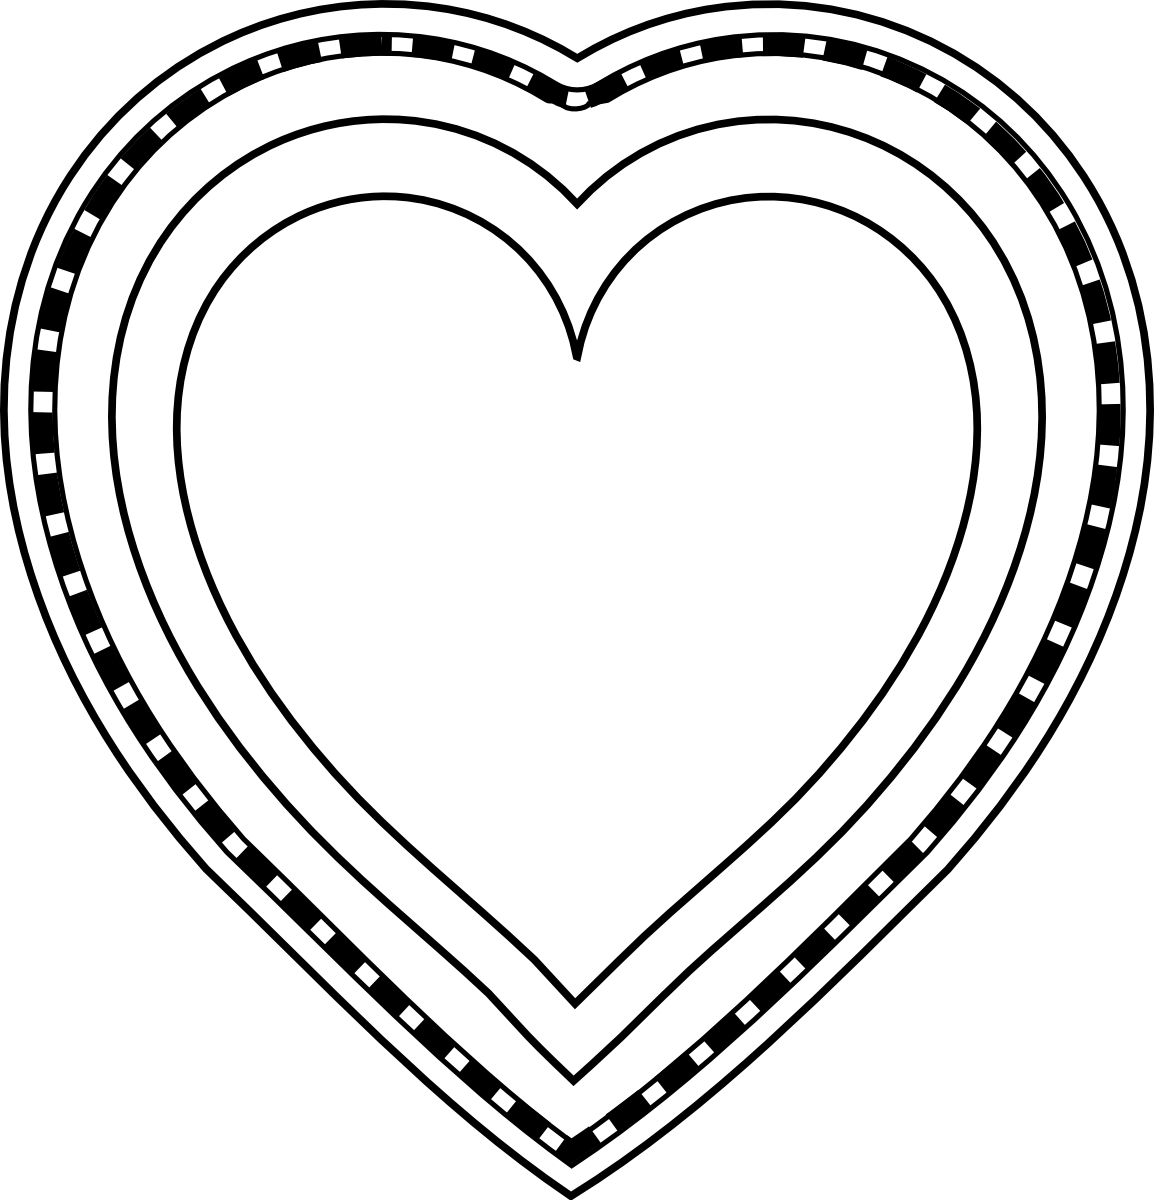 Free decorative hearts cliparts. Heart clipart decoration